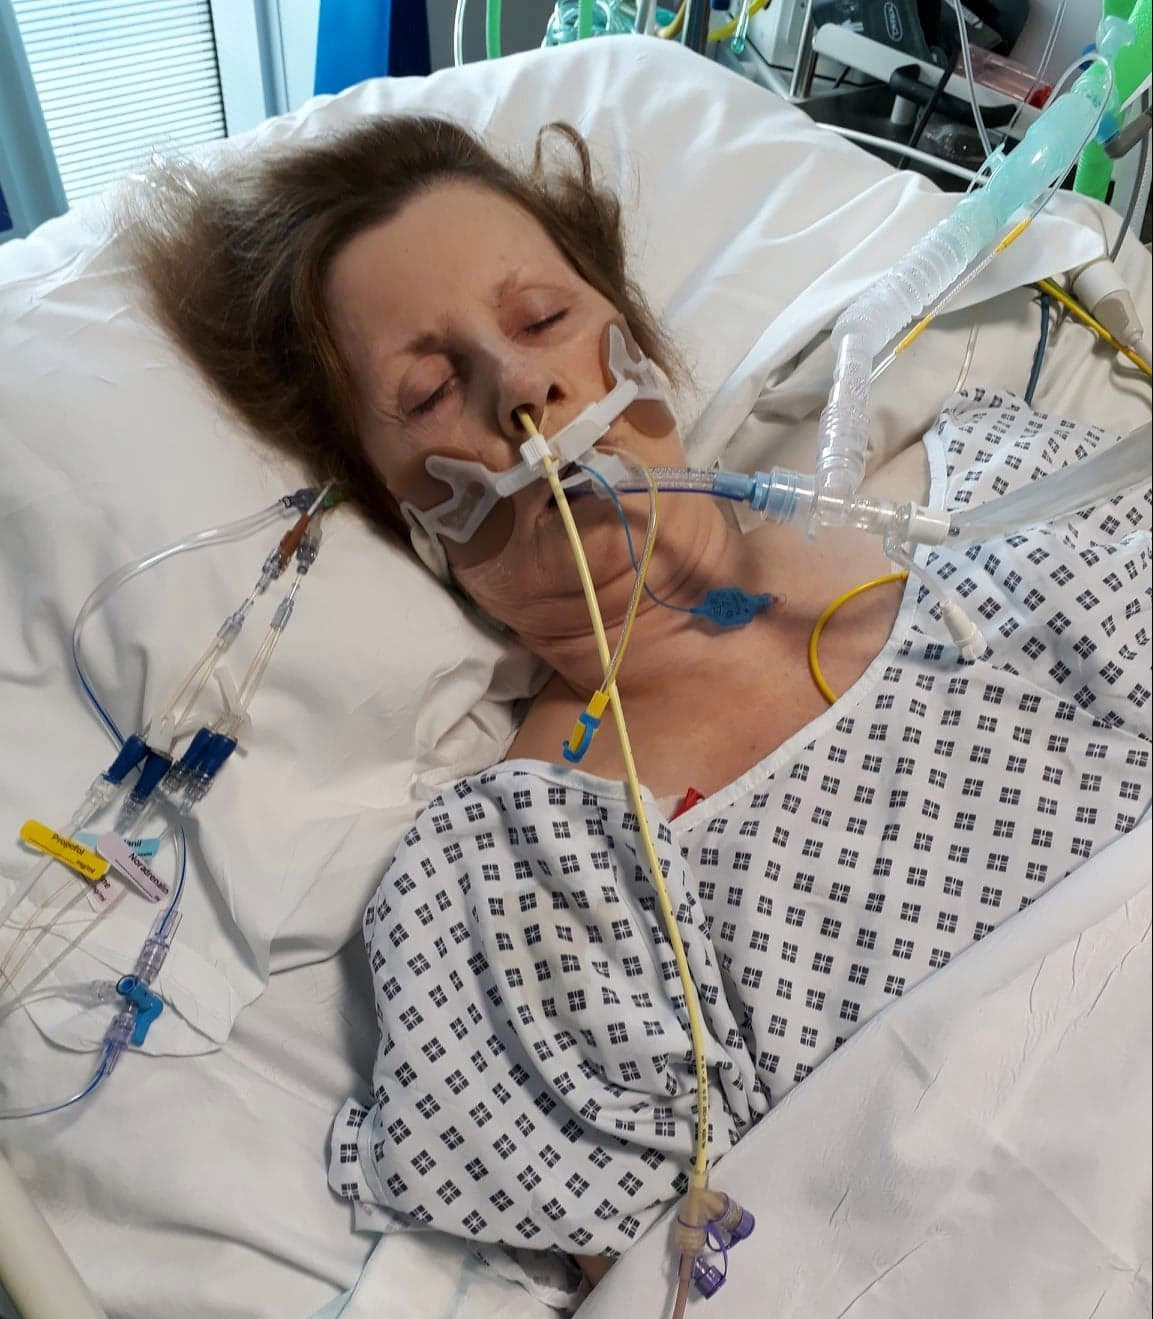 Shirley Hair spent five days in a medically-induced coma, and was in intensive care for over two months